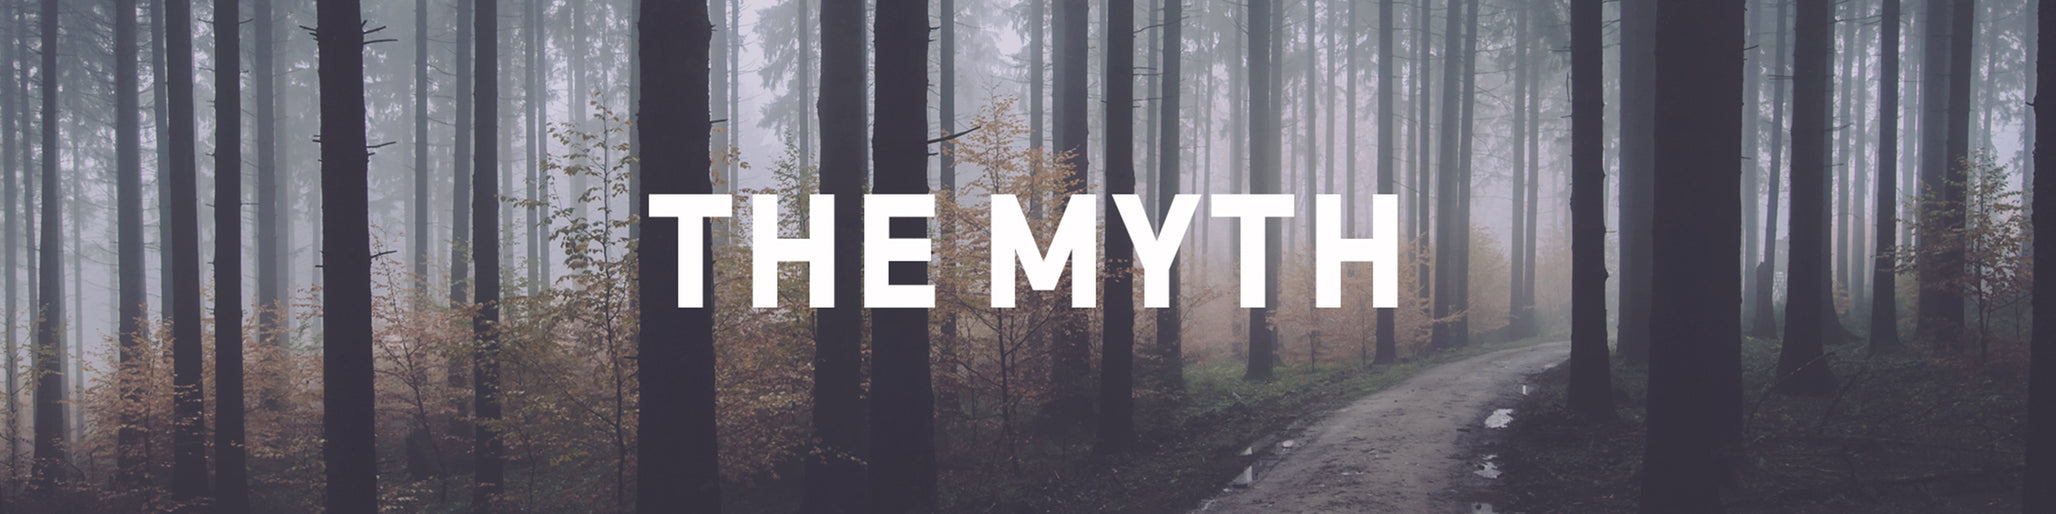 Ryzon The Myth Header Image